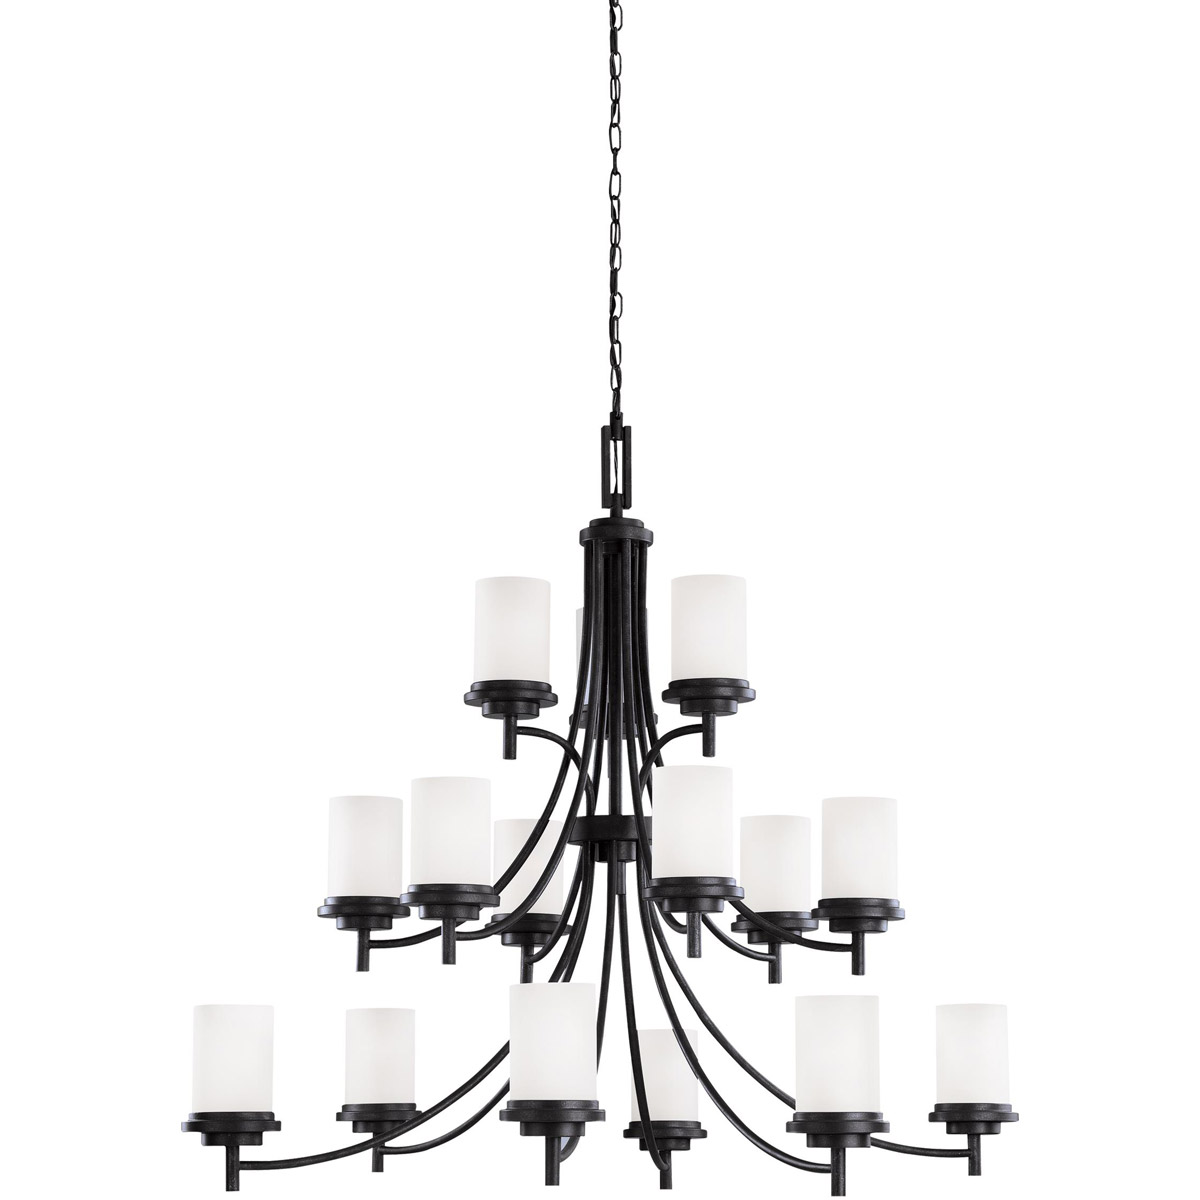 Sea Gull 31663-839 Winnetka 15 Light 47 inch Blacksmith Chandelier Ceiling Light in Satin Etched Glass, Standard photo